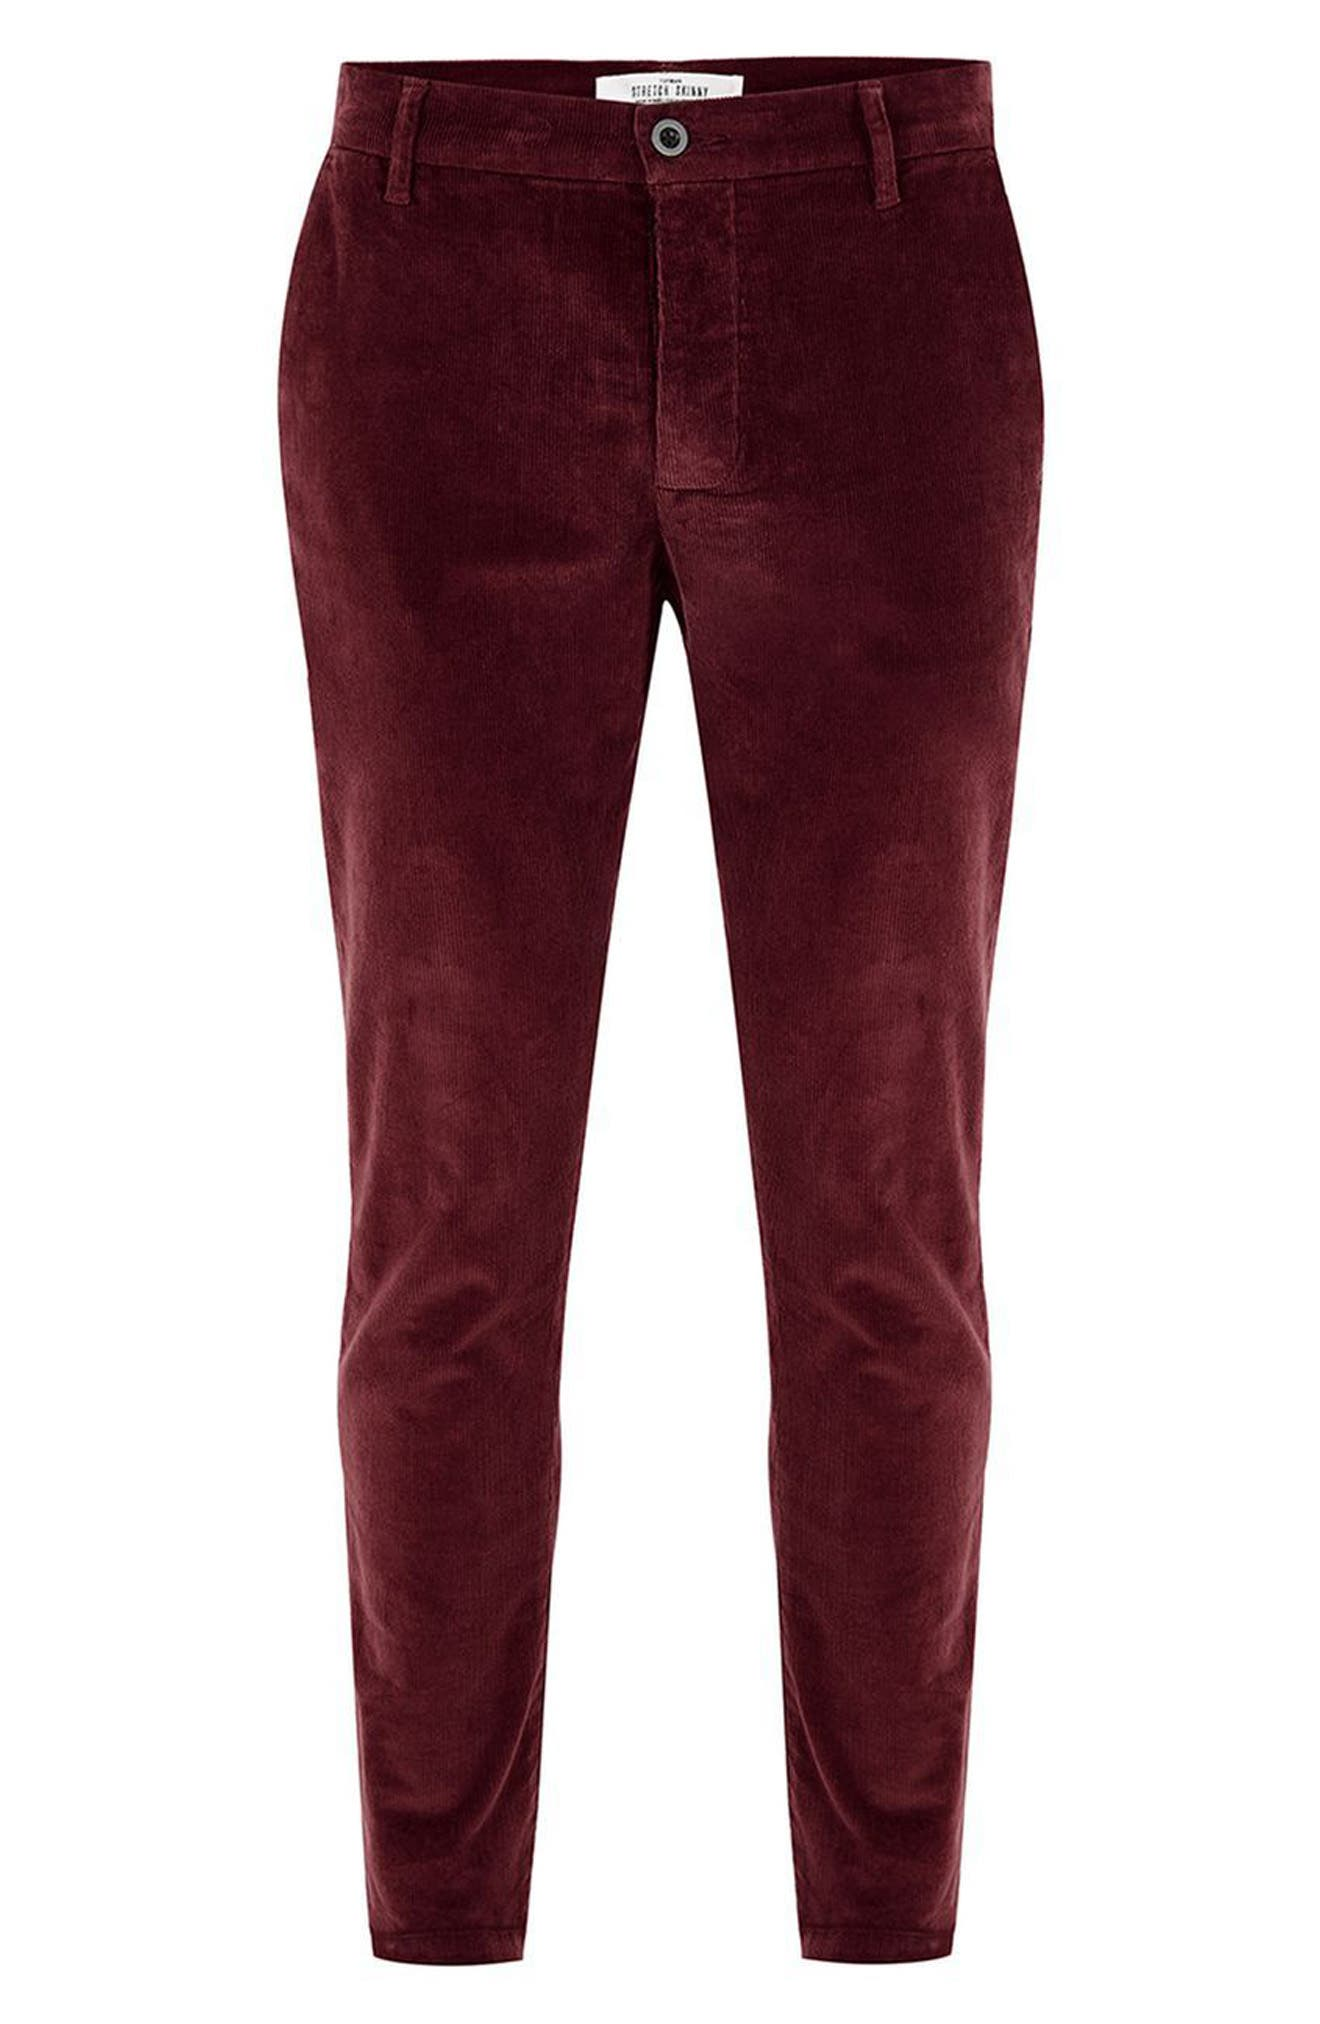 Skinny Fit Corduroy Trousers,                             Alternate thumbnail 8, color,